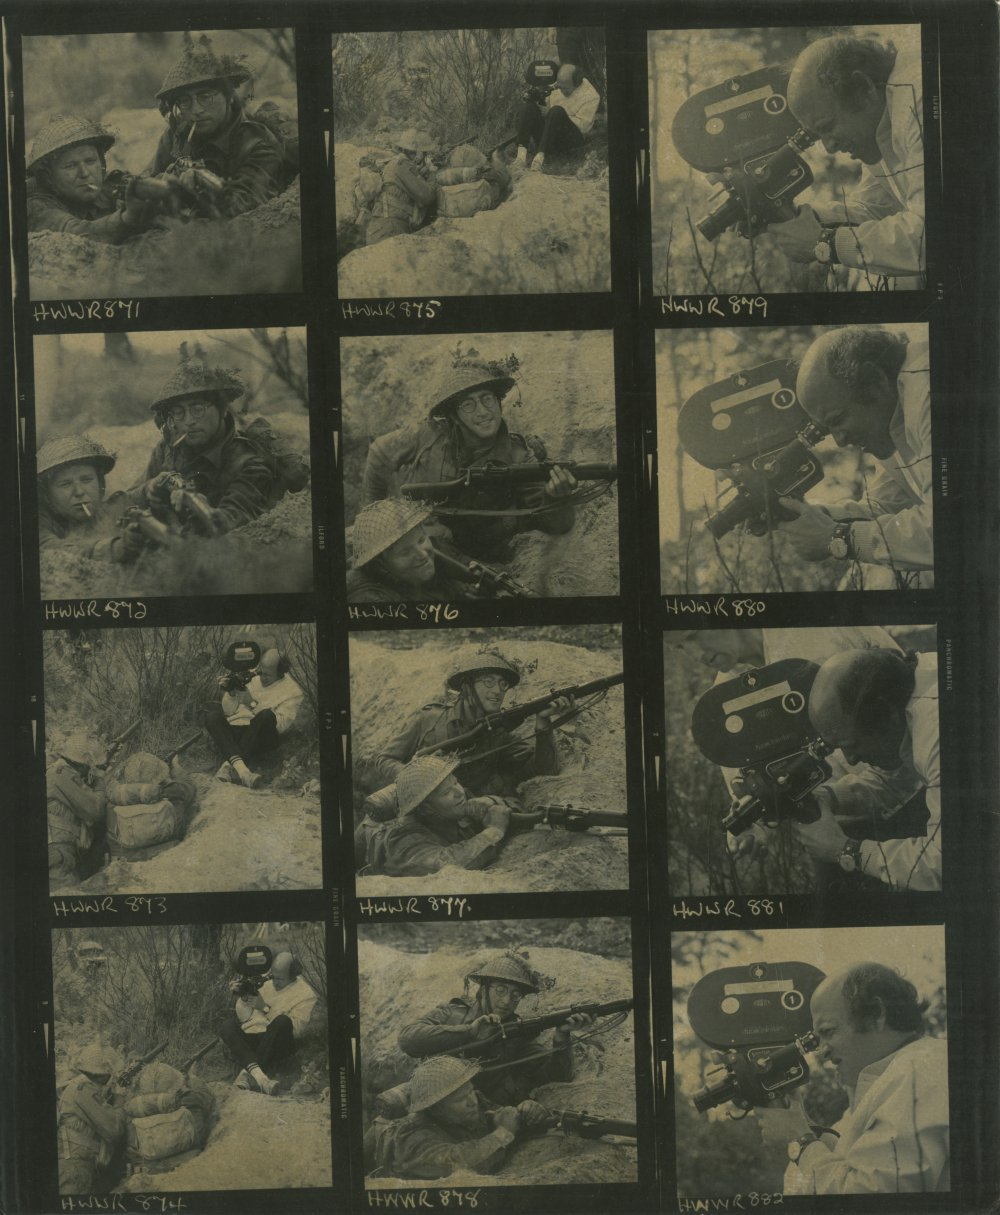 How I Won the War (1967) contact sheet